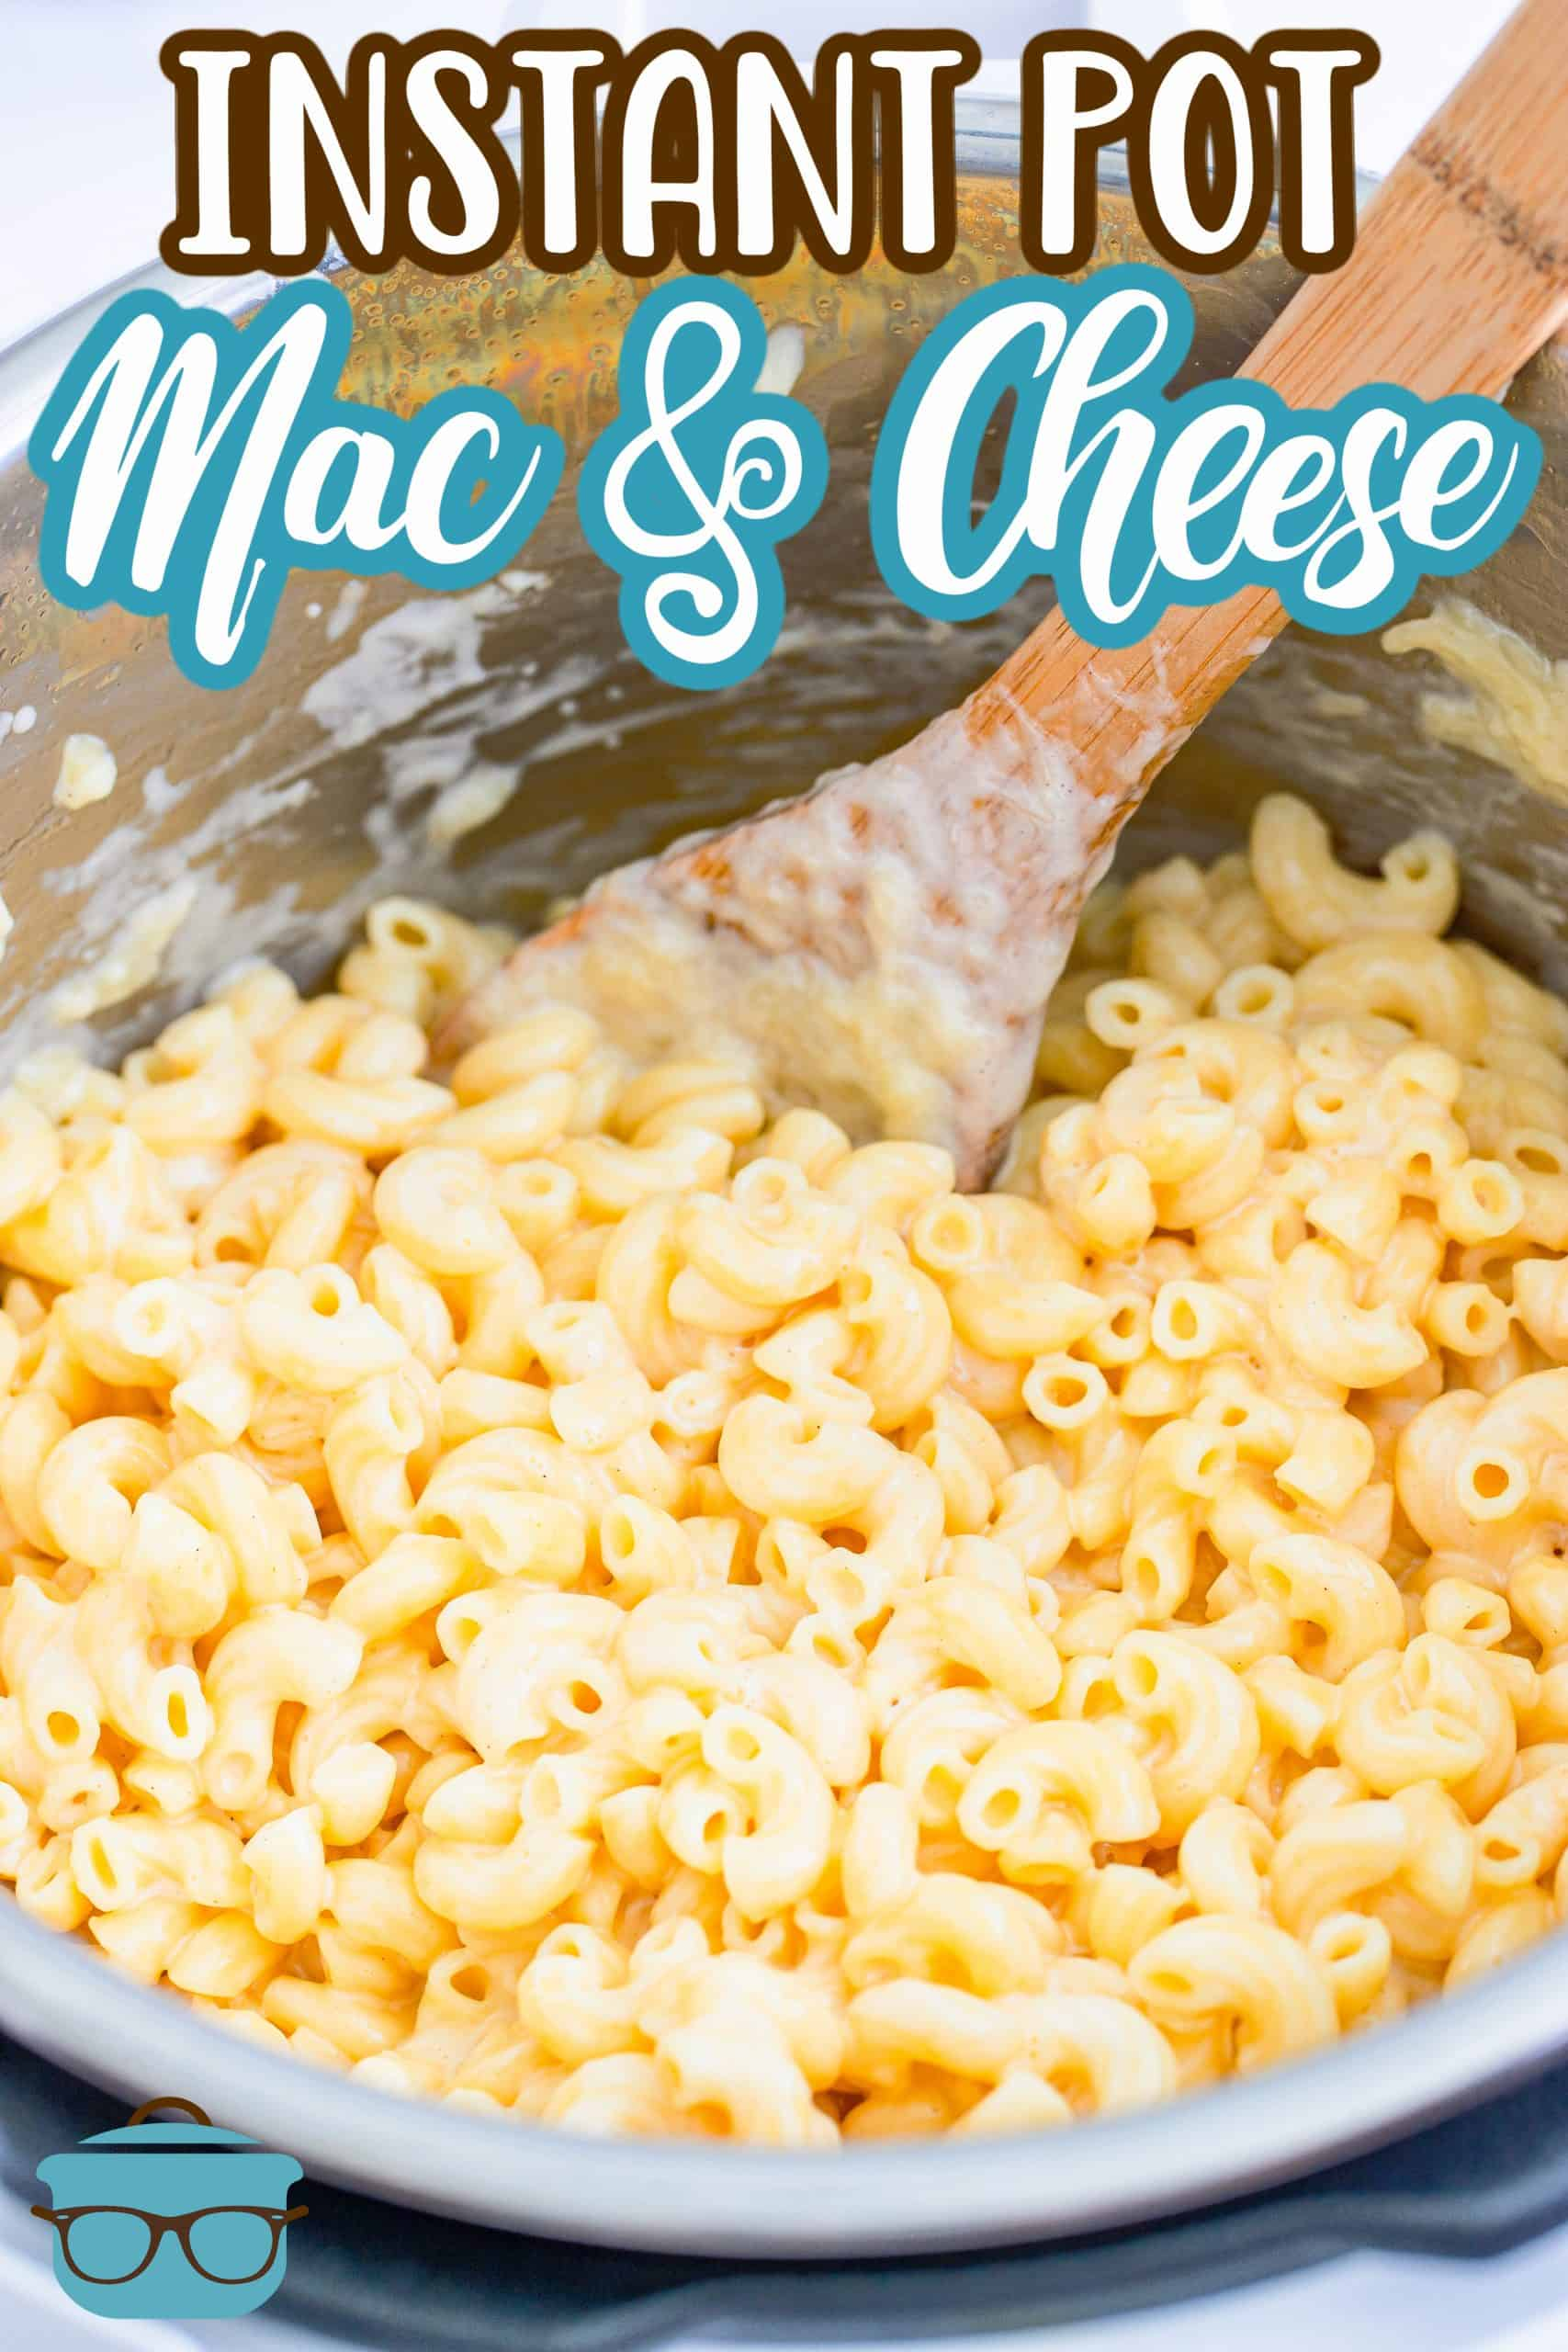 This Instant Pot Macaroni and Cheese recipe is so easy and whips up fast! No need to precook the noodles beforehand! Fresh cheese and butter.